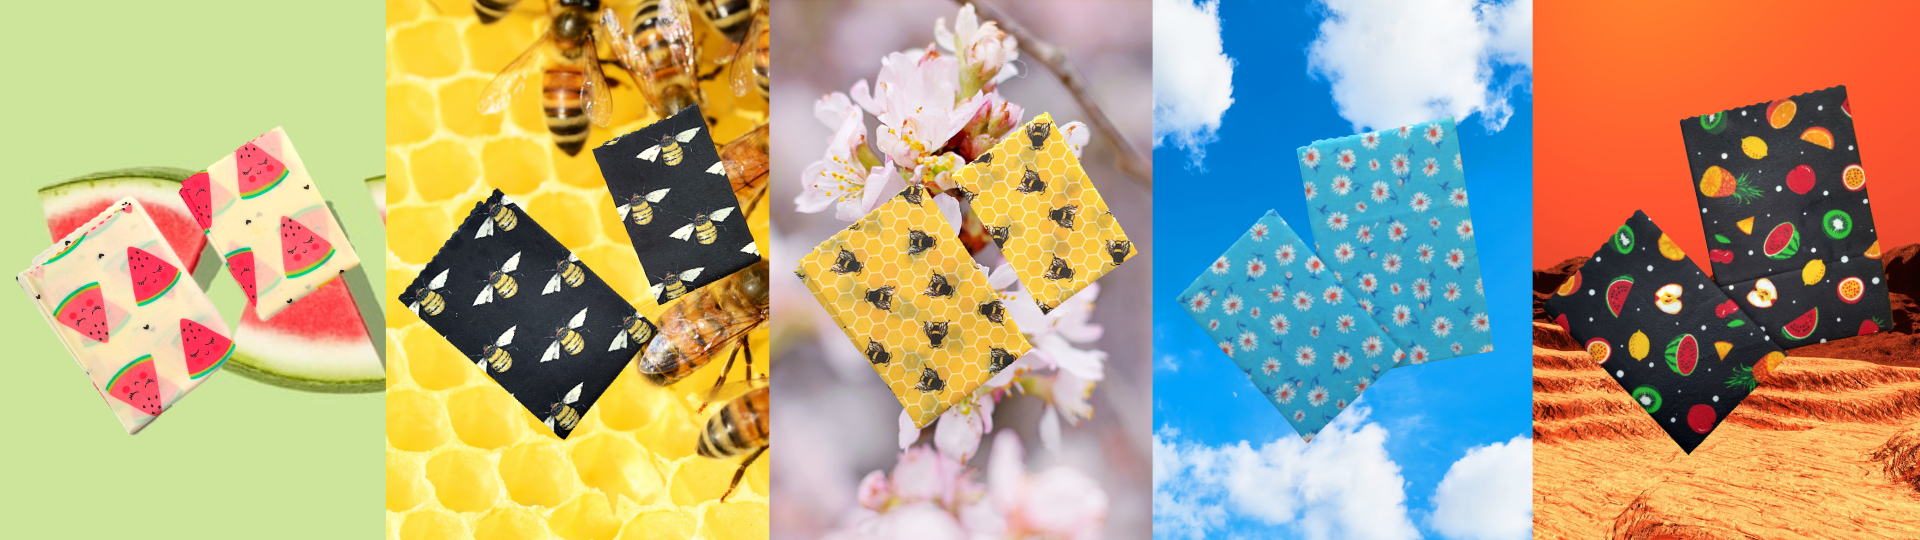 Our 5 patterns of vegan wax wraps over colourful backgrounds.